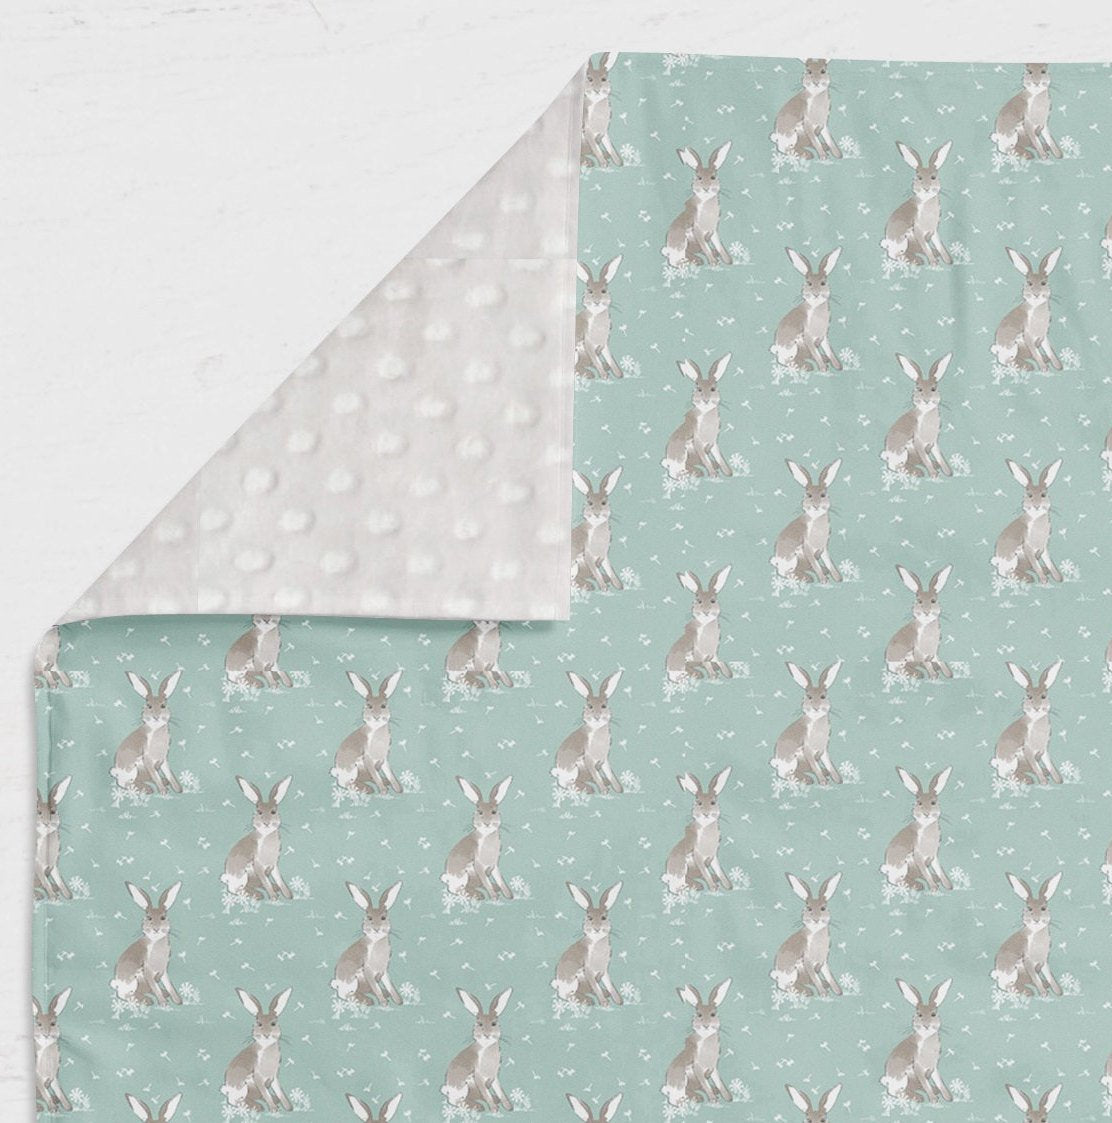 Woodland Nursery Set- Bunny Fitted Crib Sheet- Rabbit Blanket- Floral Crib Skirt- Rail Guard Cover- Crib Bumper- Changing Pad Cover Girls - Dream Evergreen @DreamEvergreen